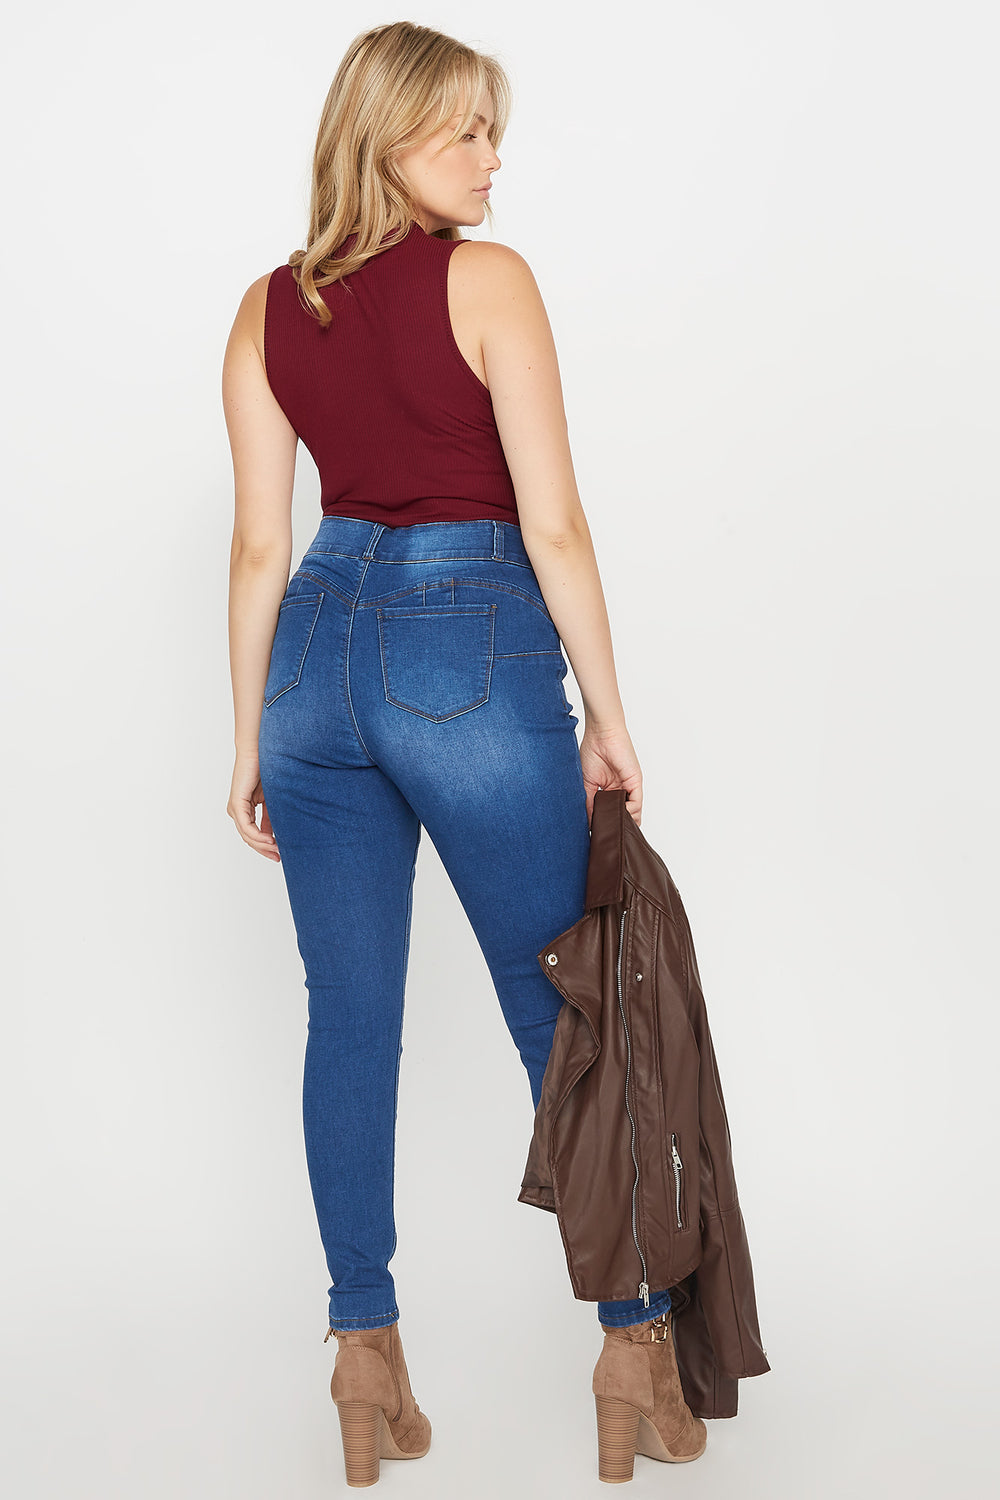 Plus Size Butt, I Love You 2-Tier High-Rise Push-Up Skinny Jean Medium Blue